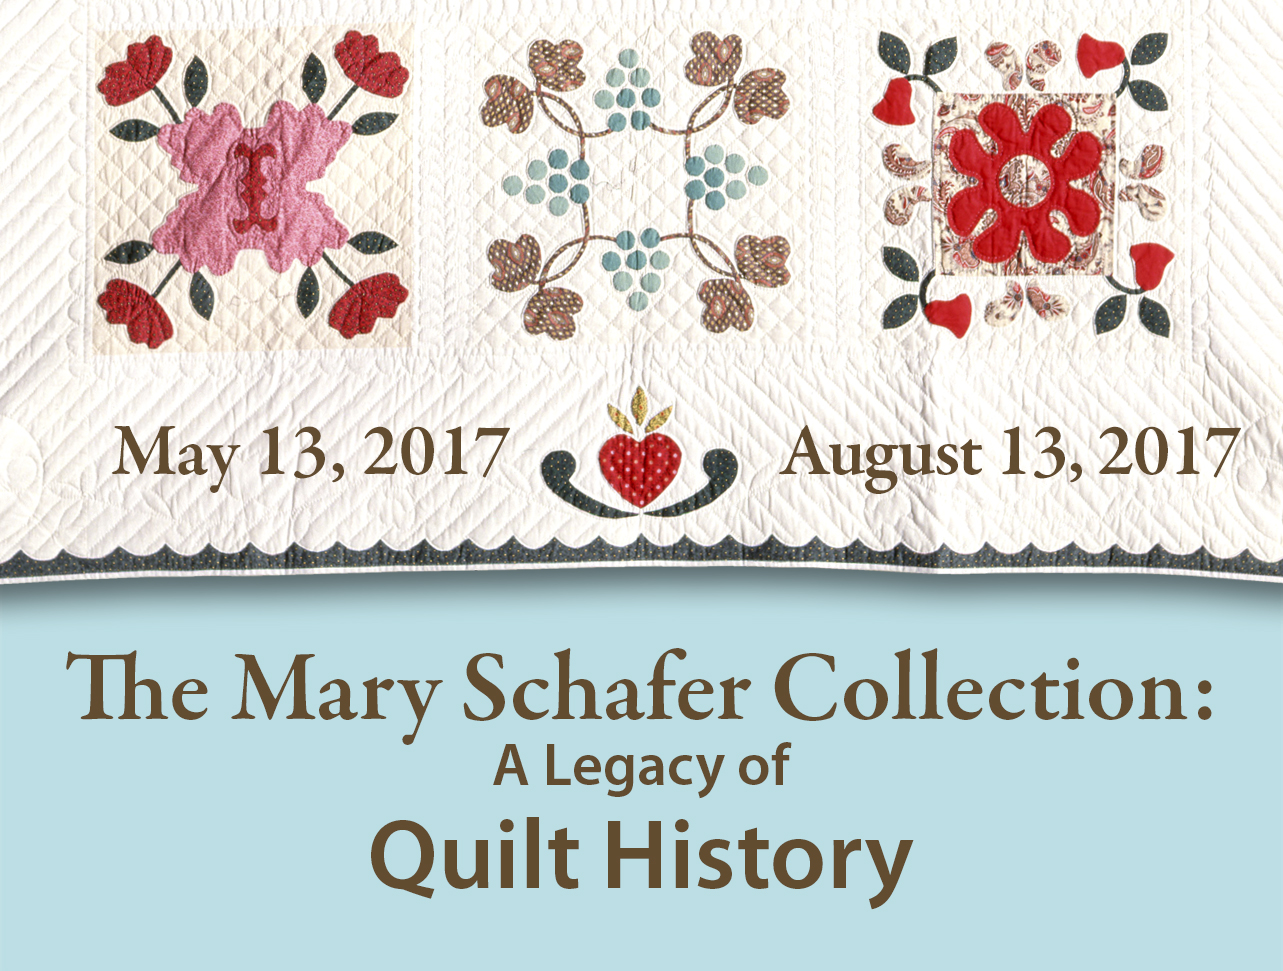 2017 past exhibits - mercer museum & fonthill castle